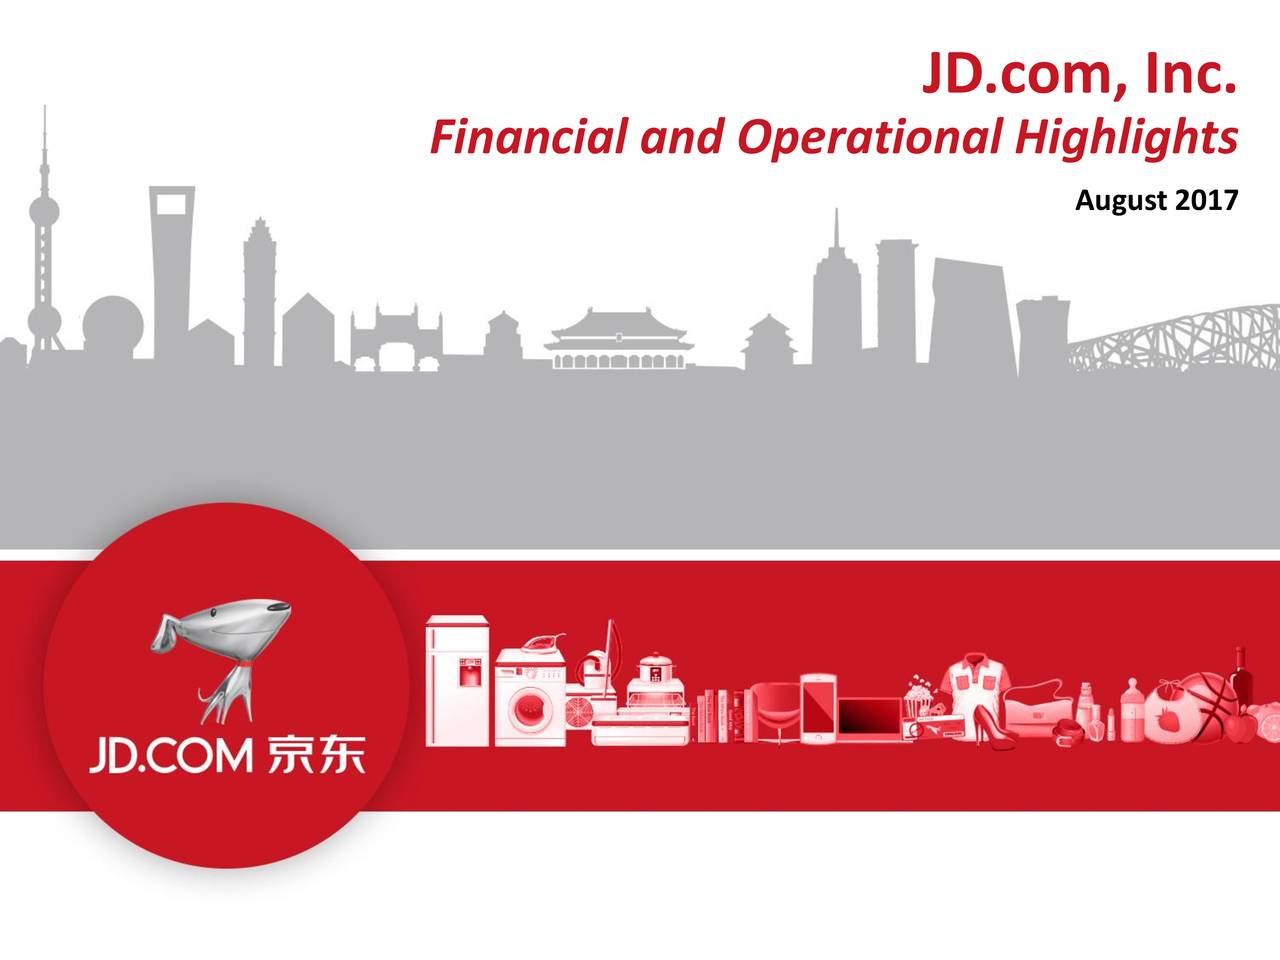 Financial and Operational Highlights August 2017